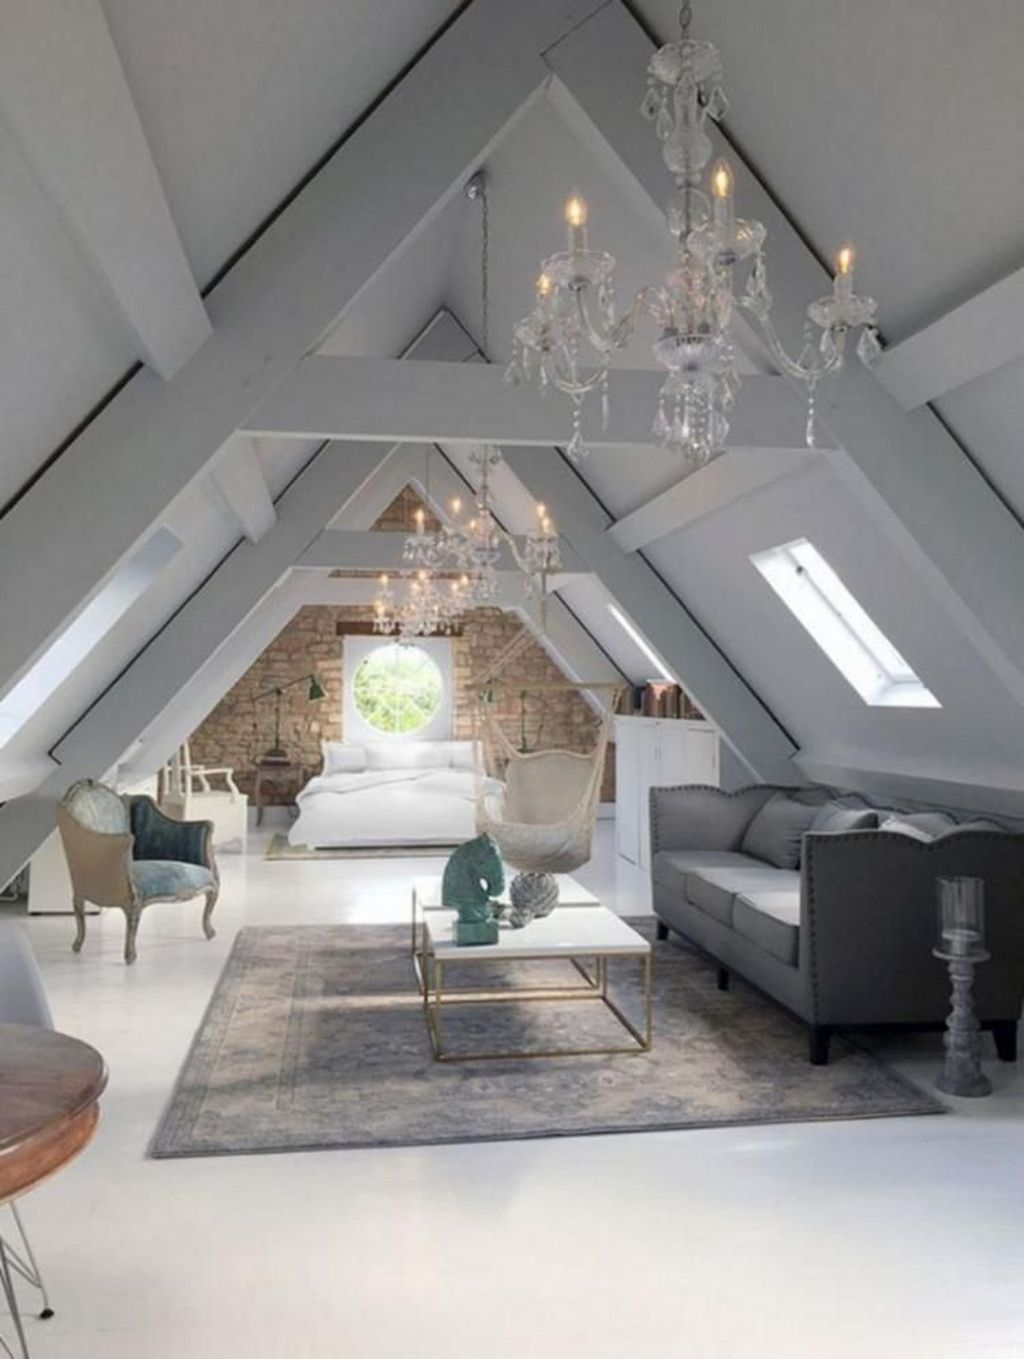 Vintage Home Decor 34 The Best Attic Bedroom Ideas To Maximize Your Home If You Have Run Out Of Space Attic Bedroom Designs Attic Master Bedroom Loft Spaces